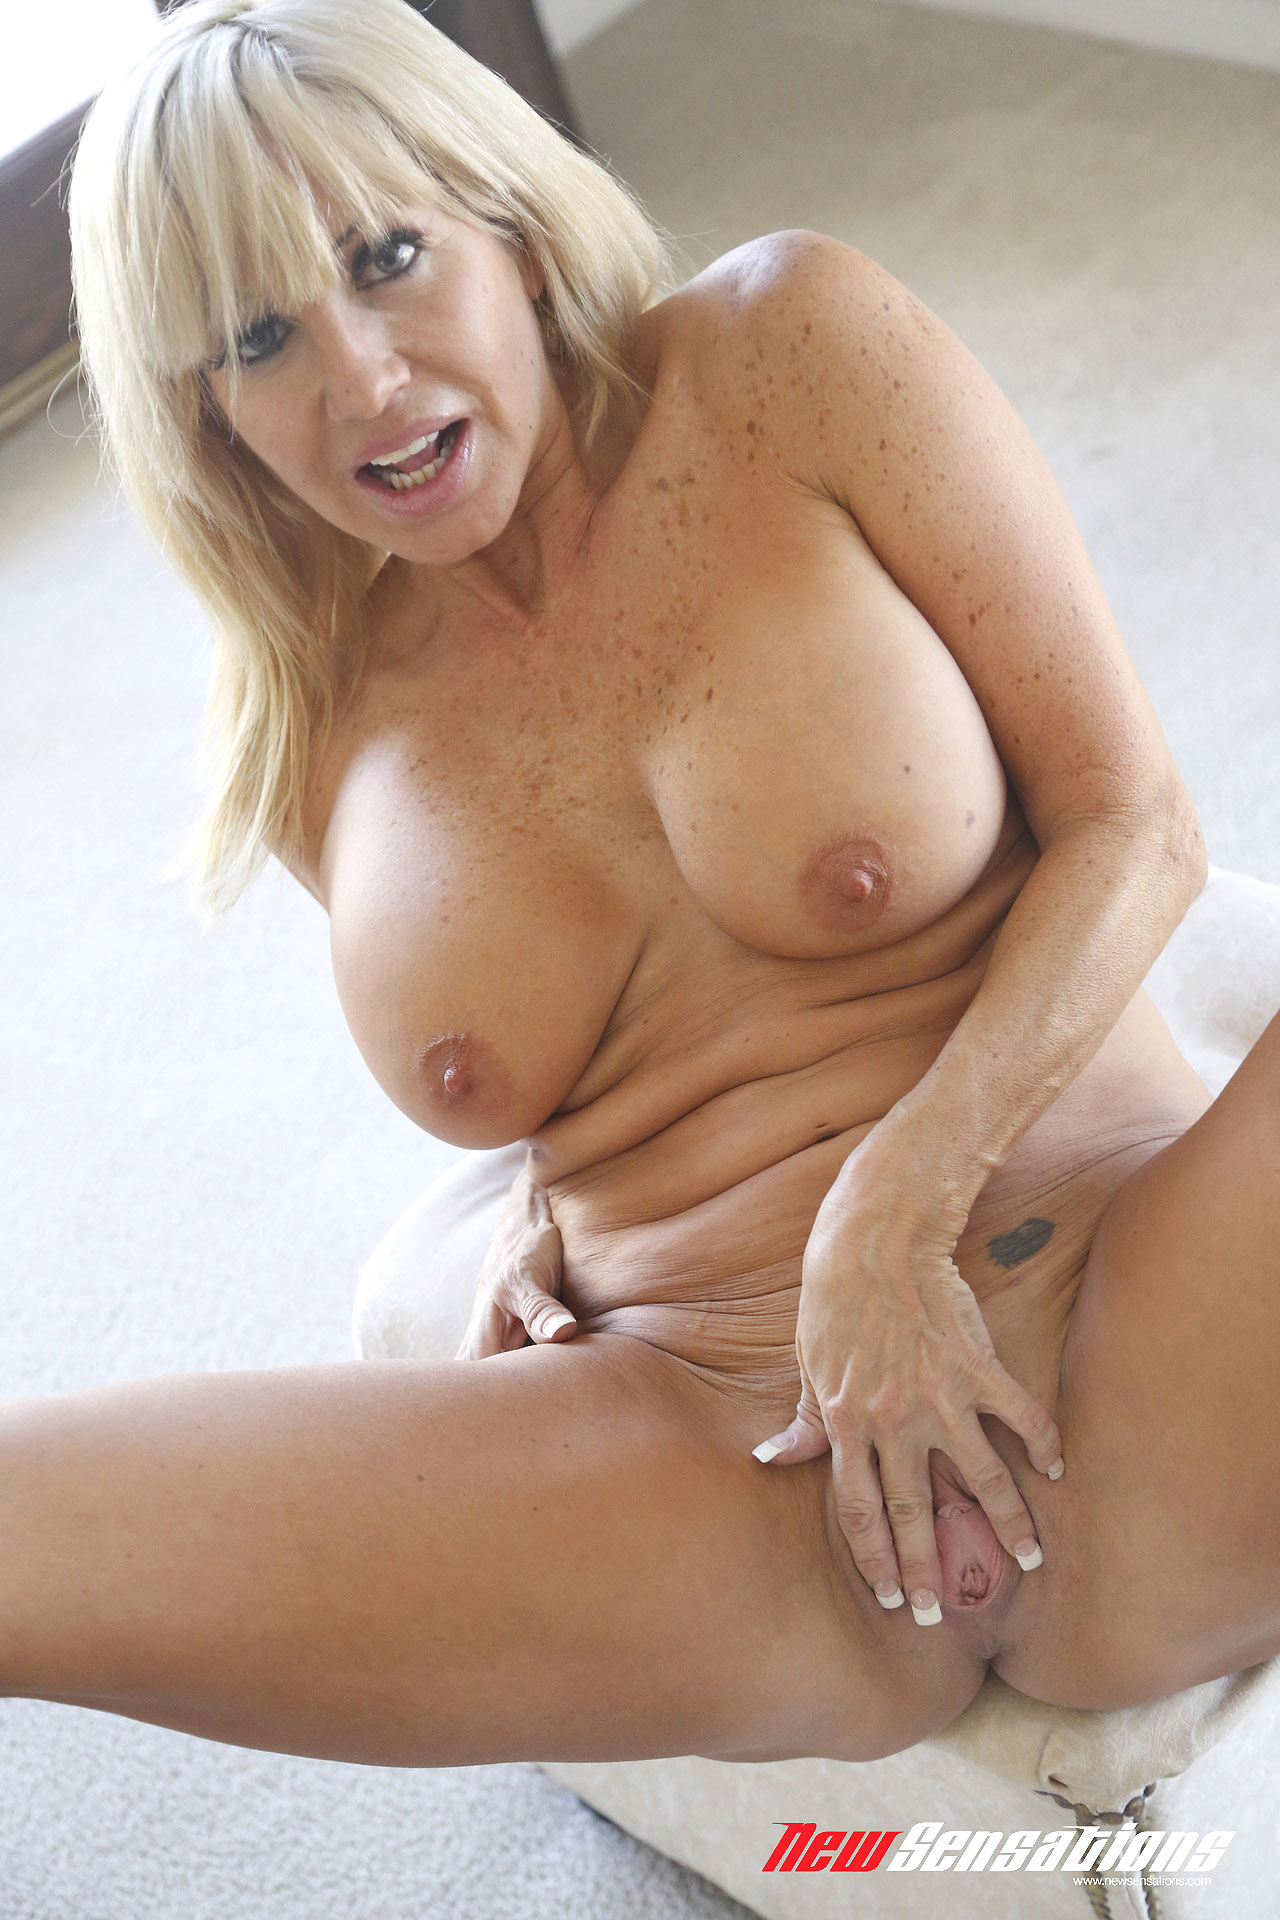 Horny milf mom from dating website fuck and blowjob 9